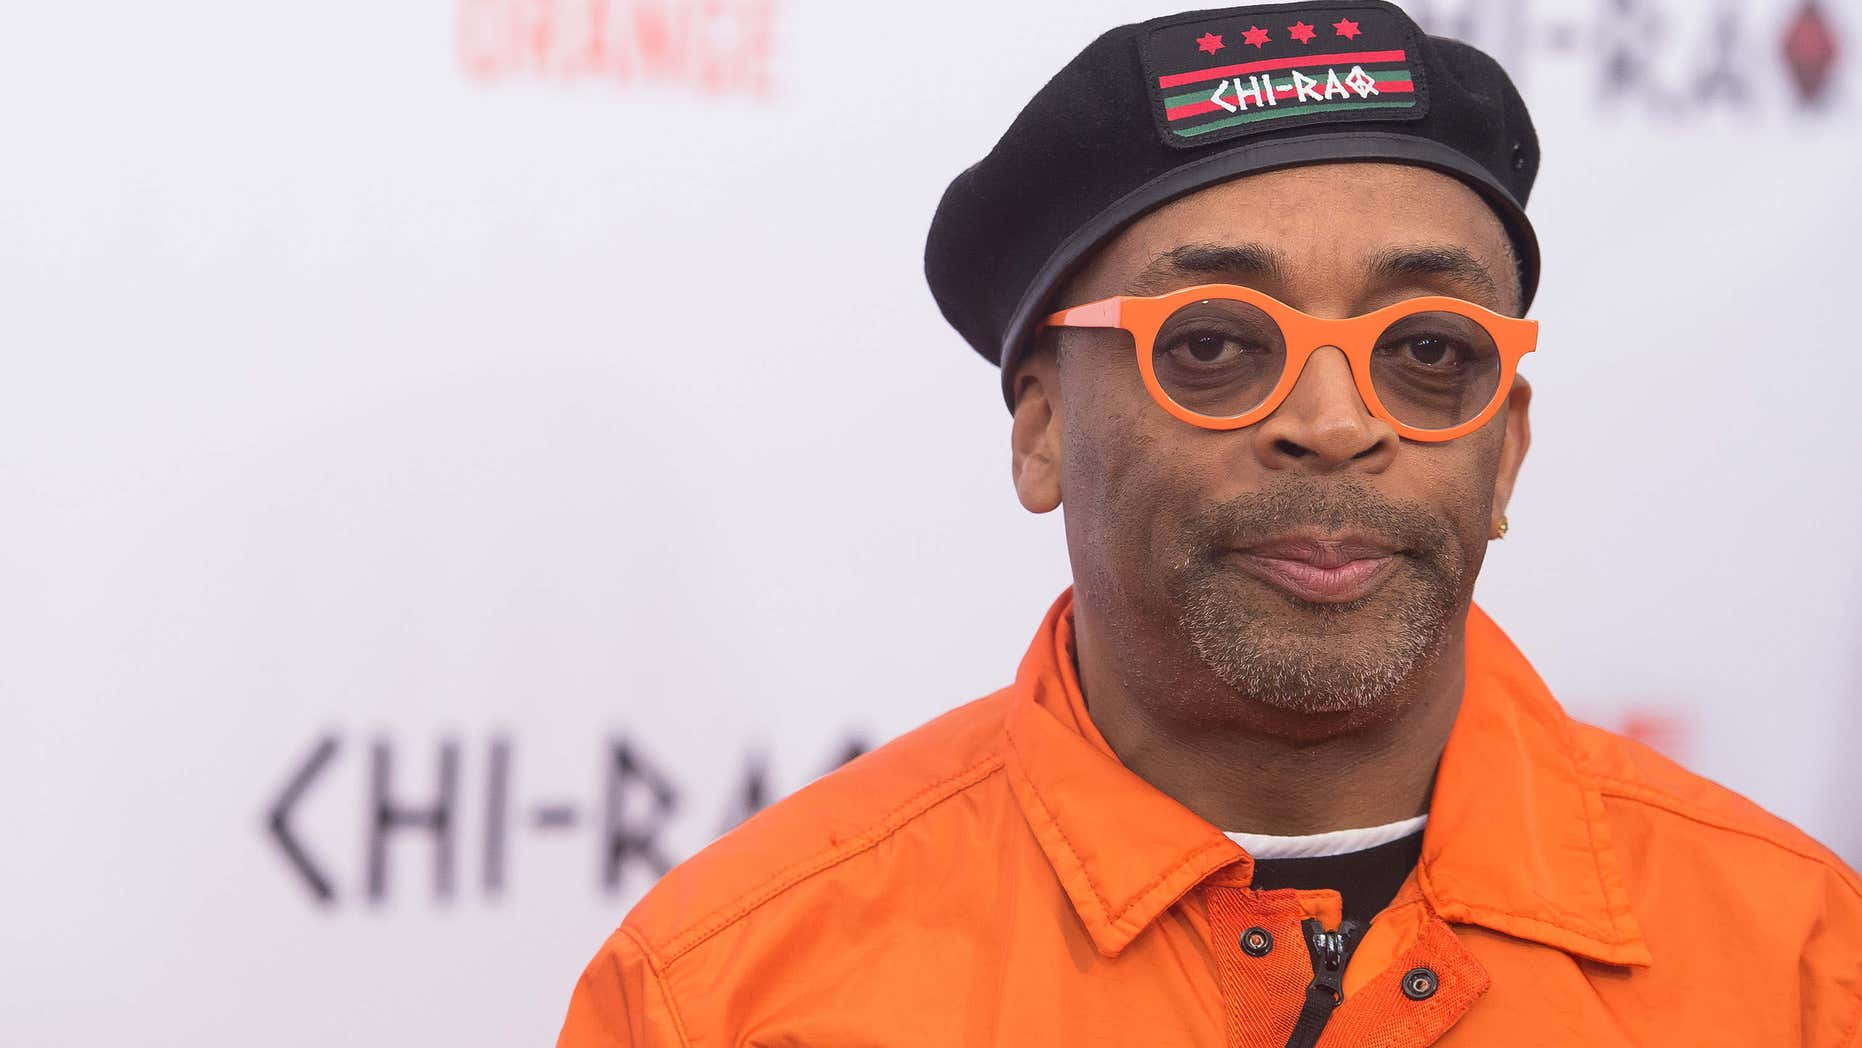 """Dec. 1, 2015: Spike Lee attends the premiere of """"Chi-Raq"""" at the Ziegfeld Theatre on in New York."""